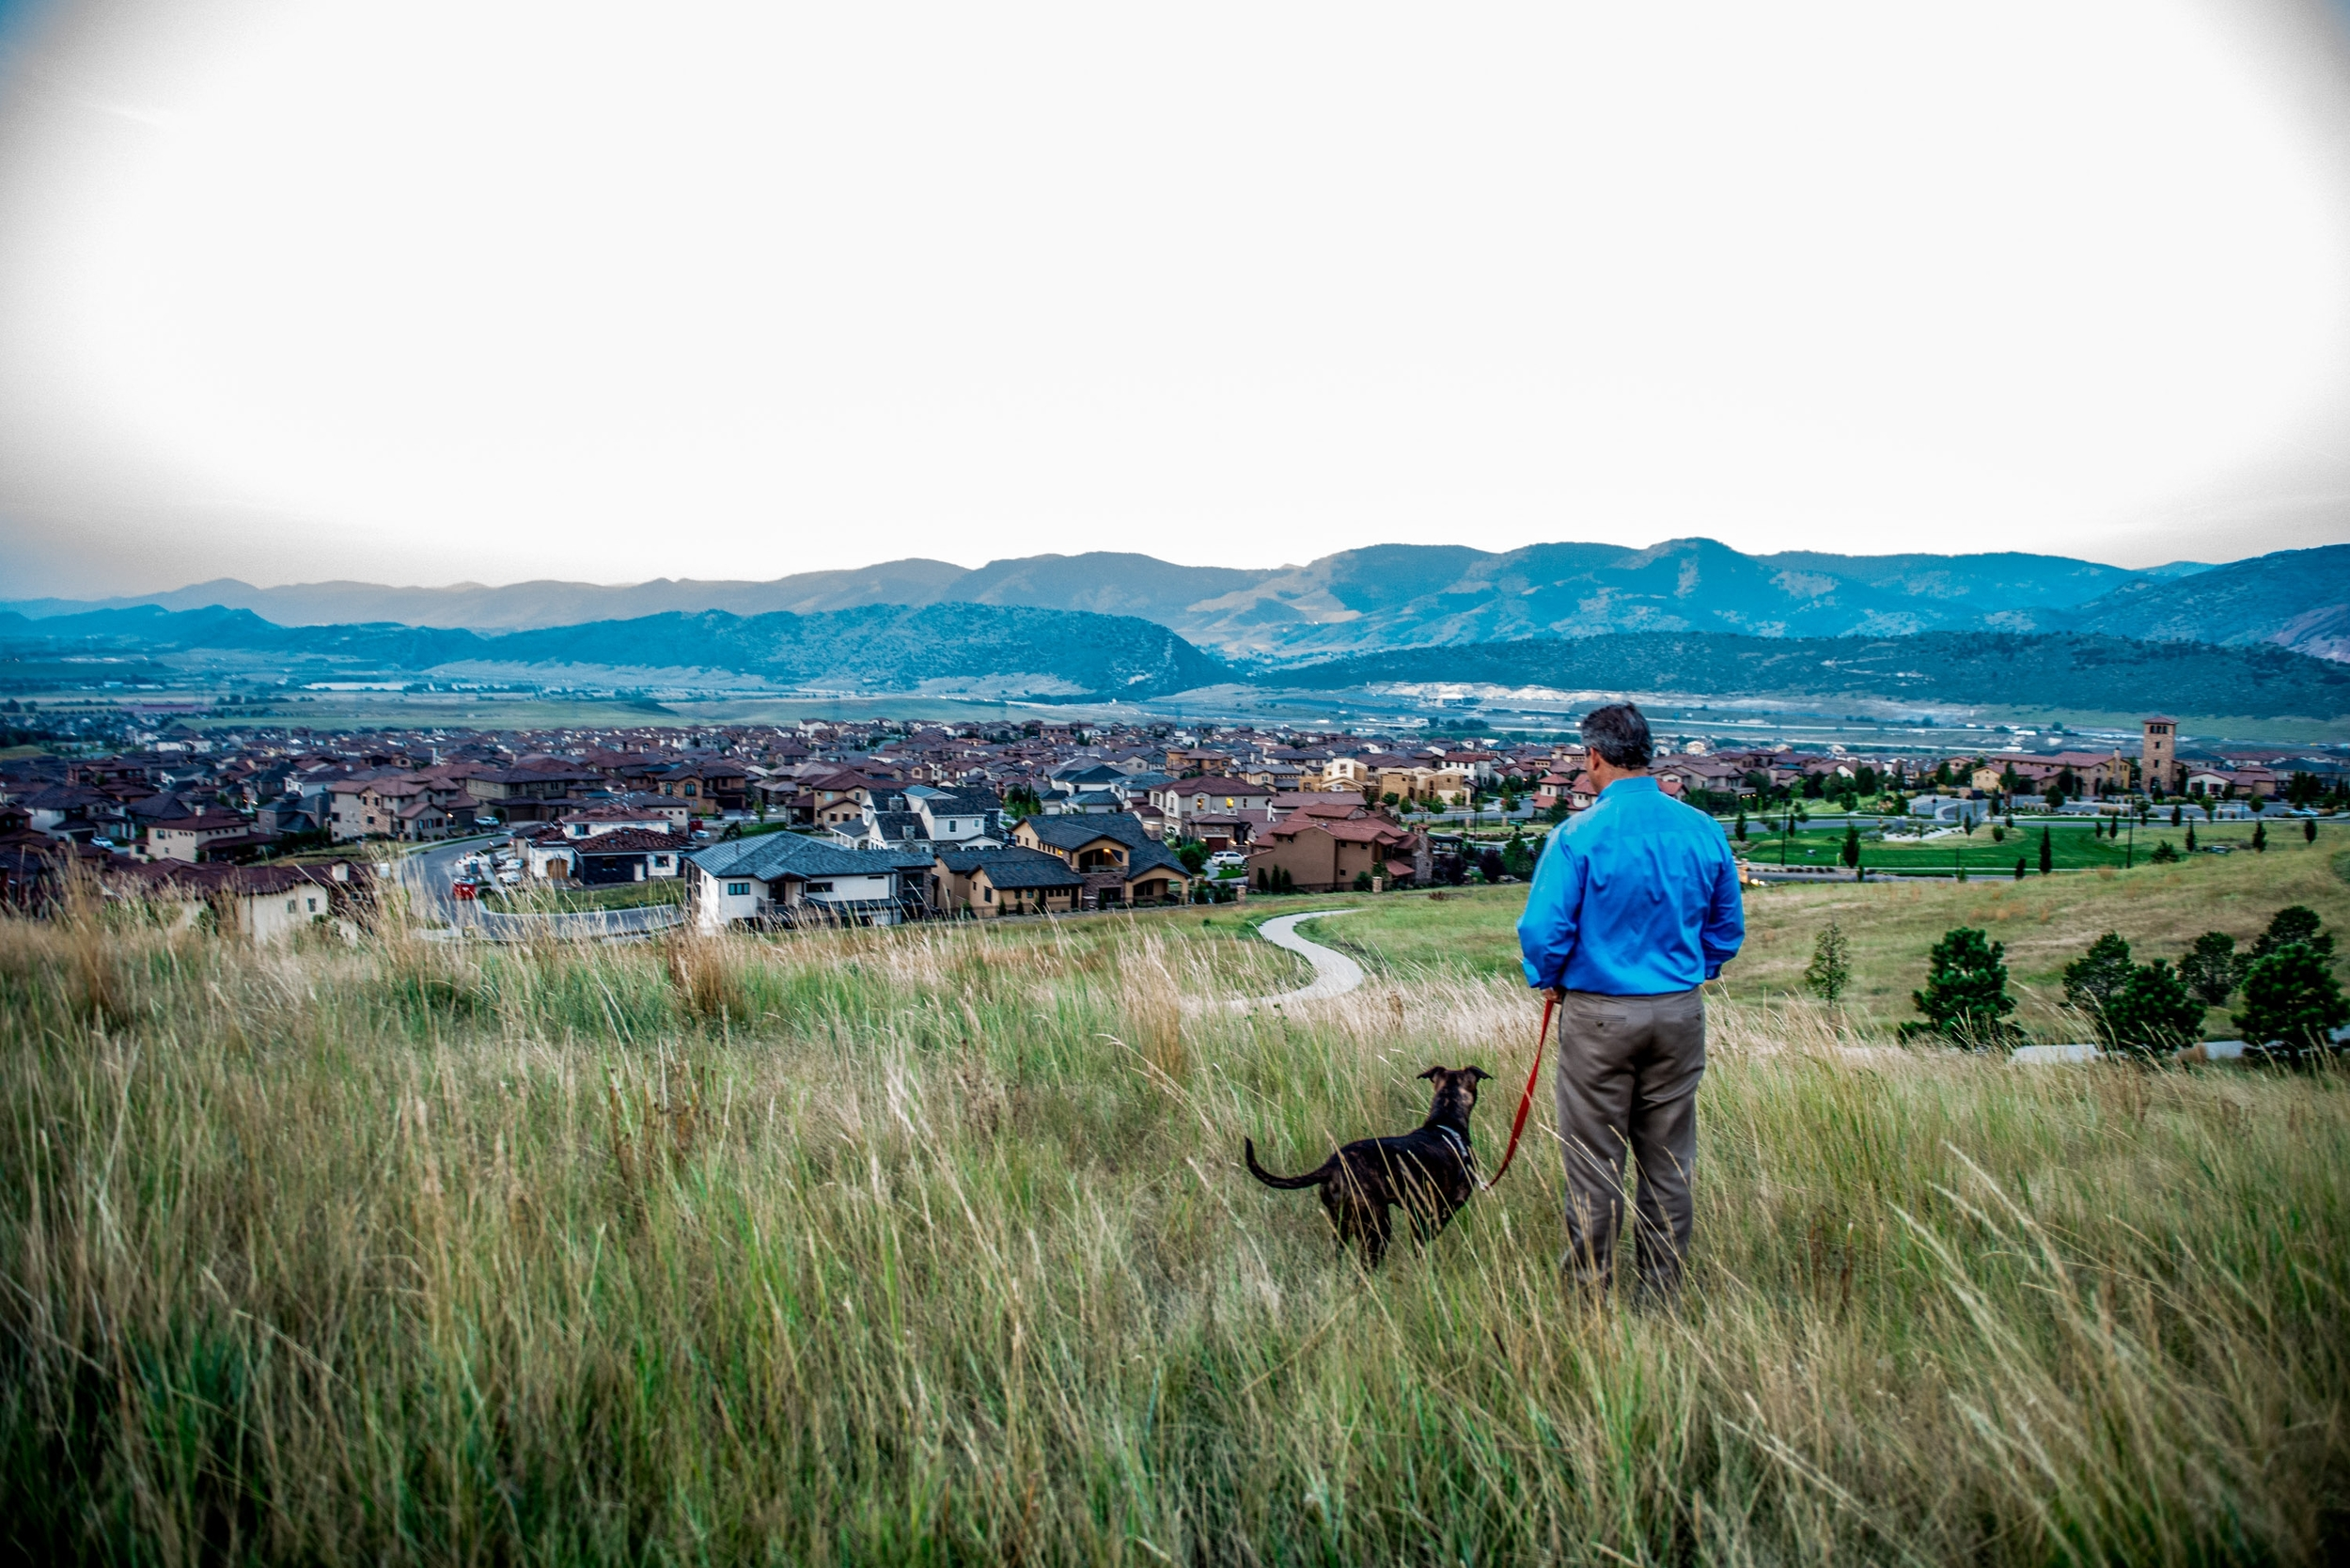 Andrew and his dog on the rim of Solterra, a foothills community in Lakewood, CO